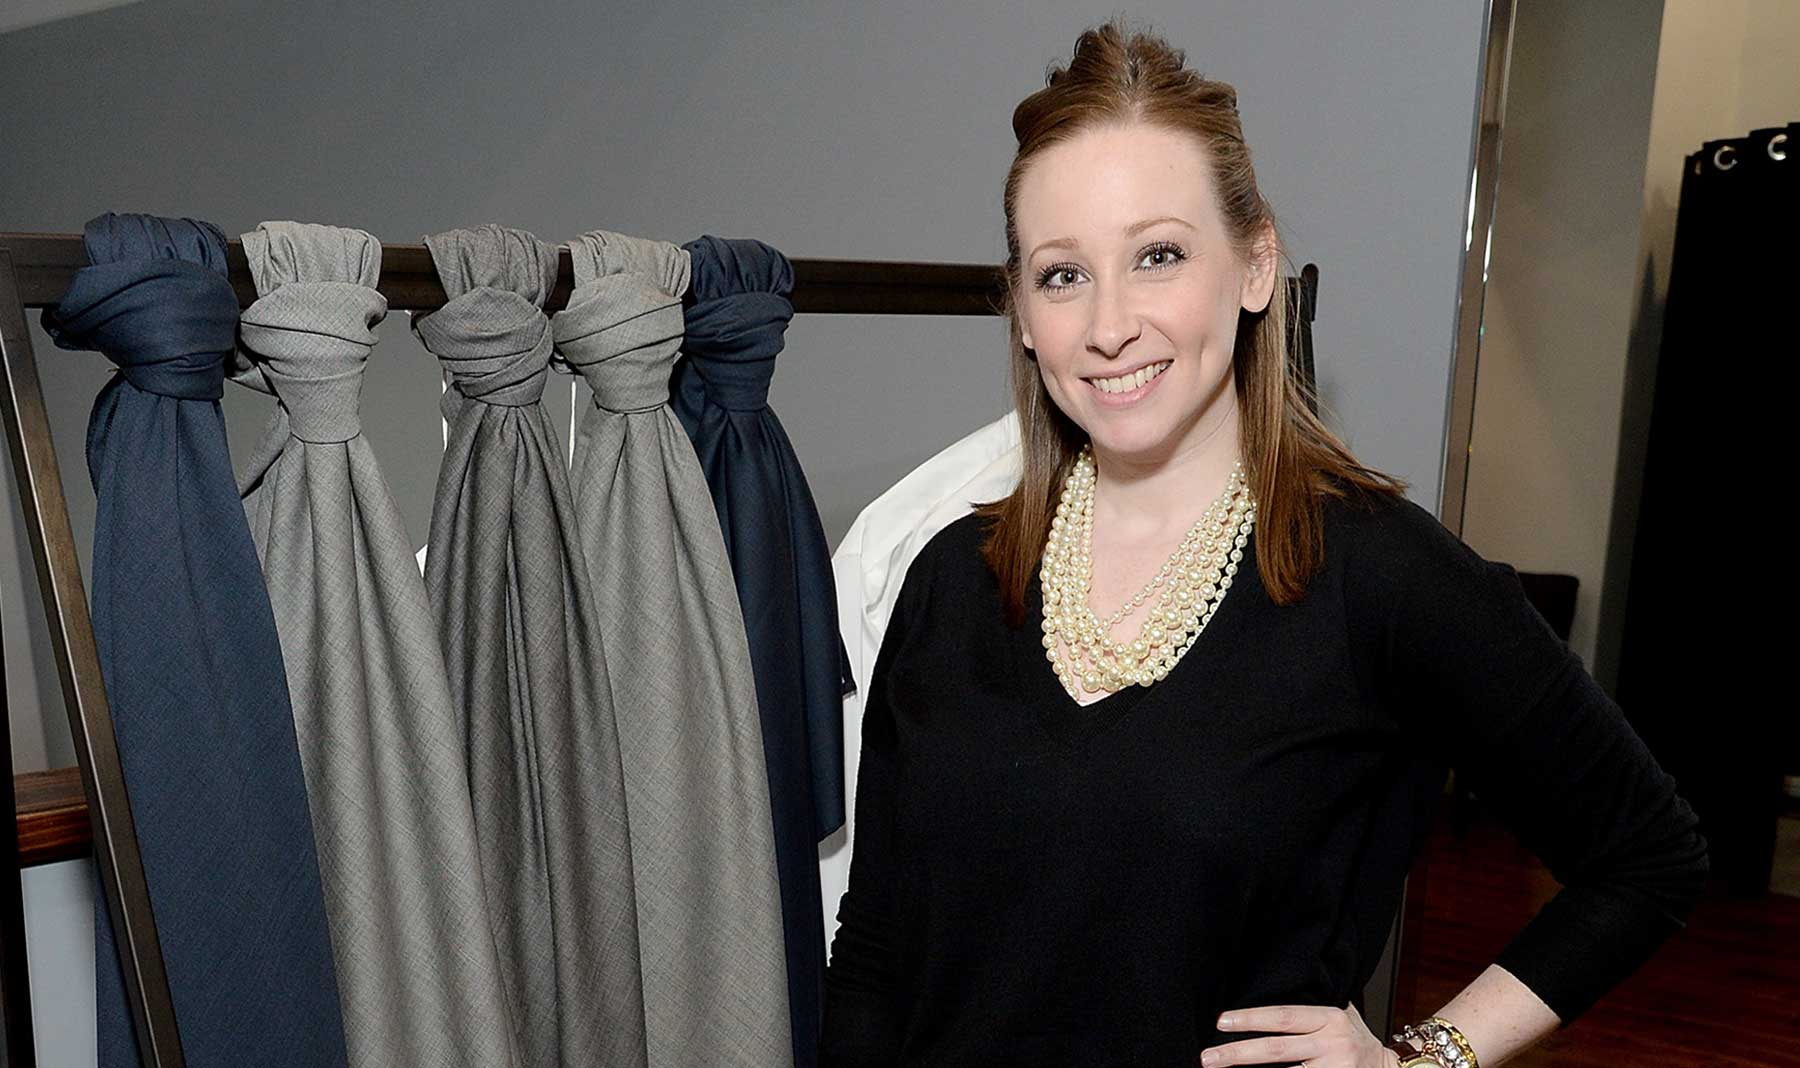 Showroom Manager Shayna Green